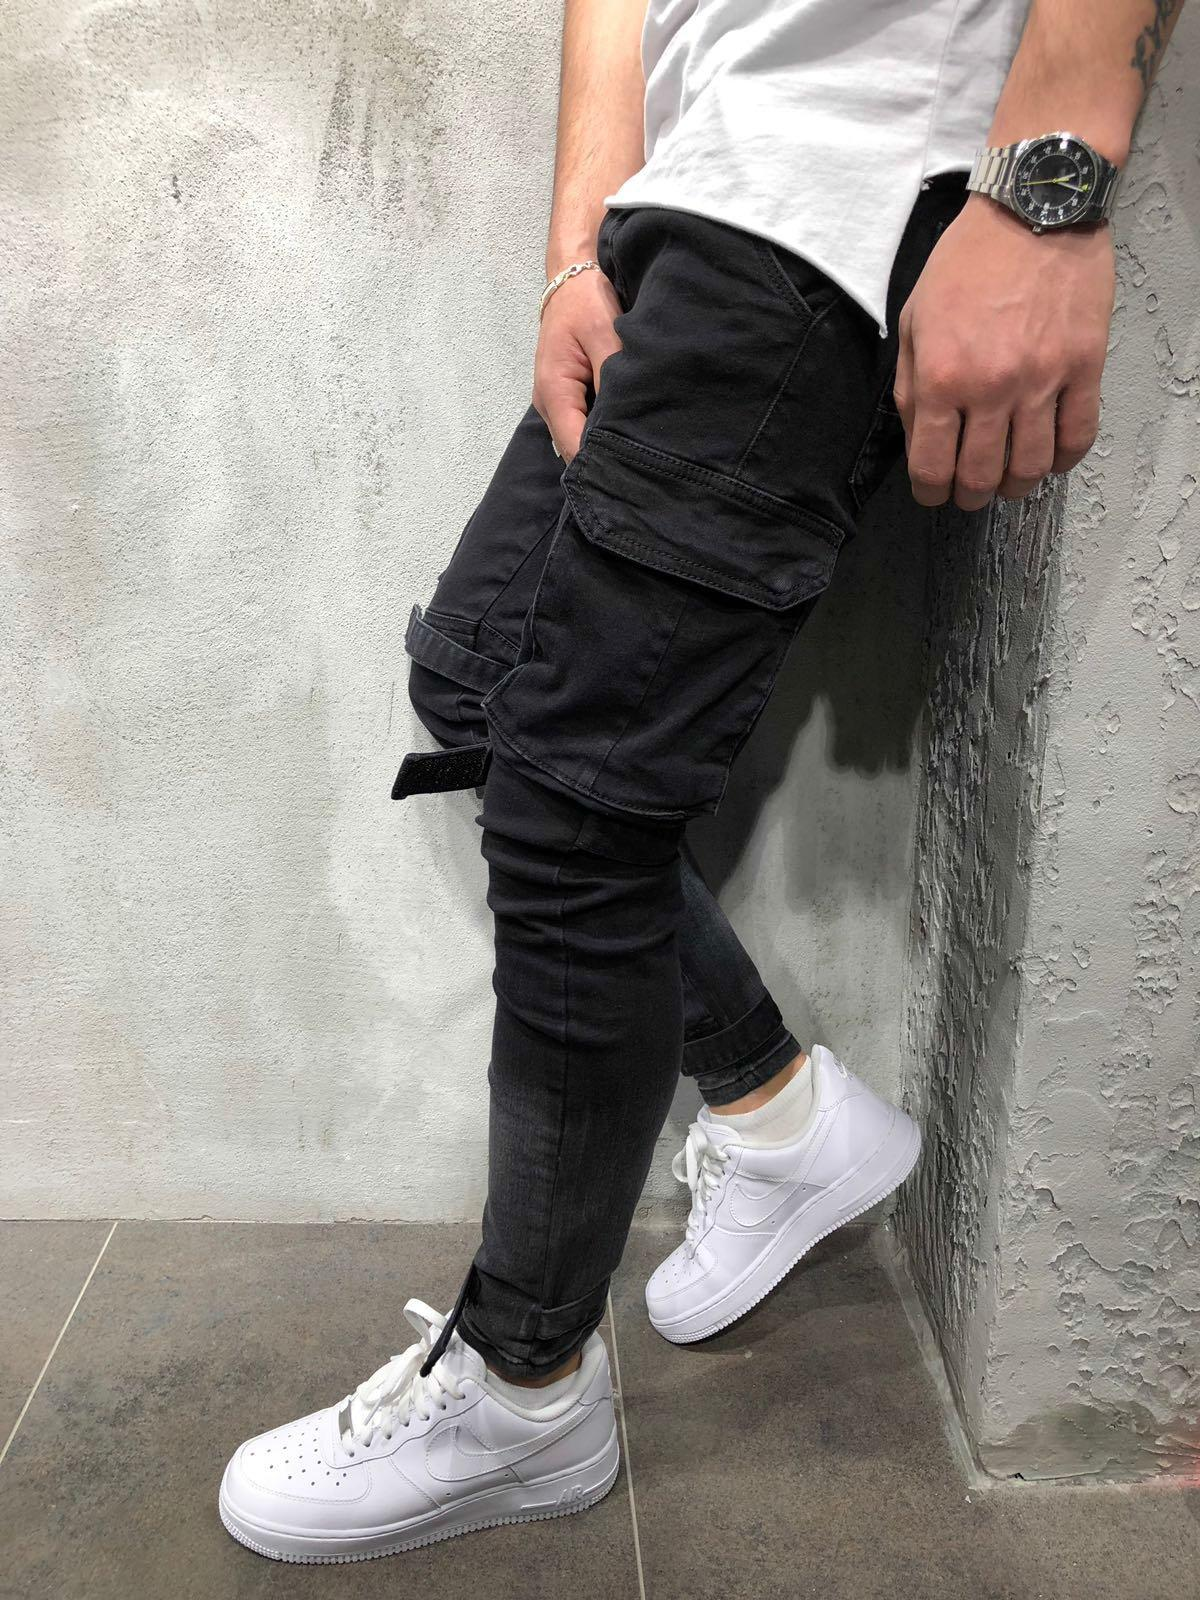 Fall and Winter New Men's Jeans Style Denim Black Large Pocket Leisure Bottom Bottom Trousers for Men pants